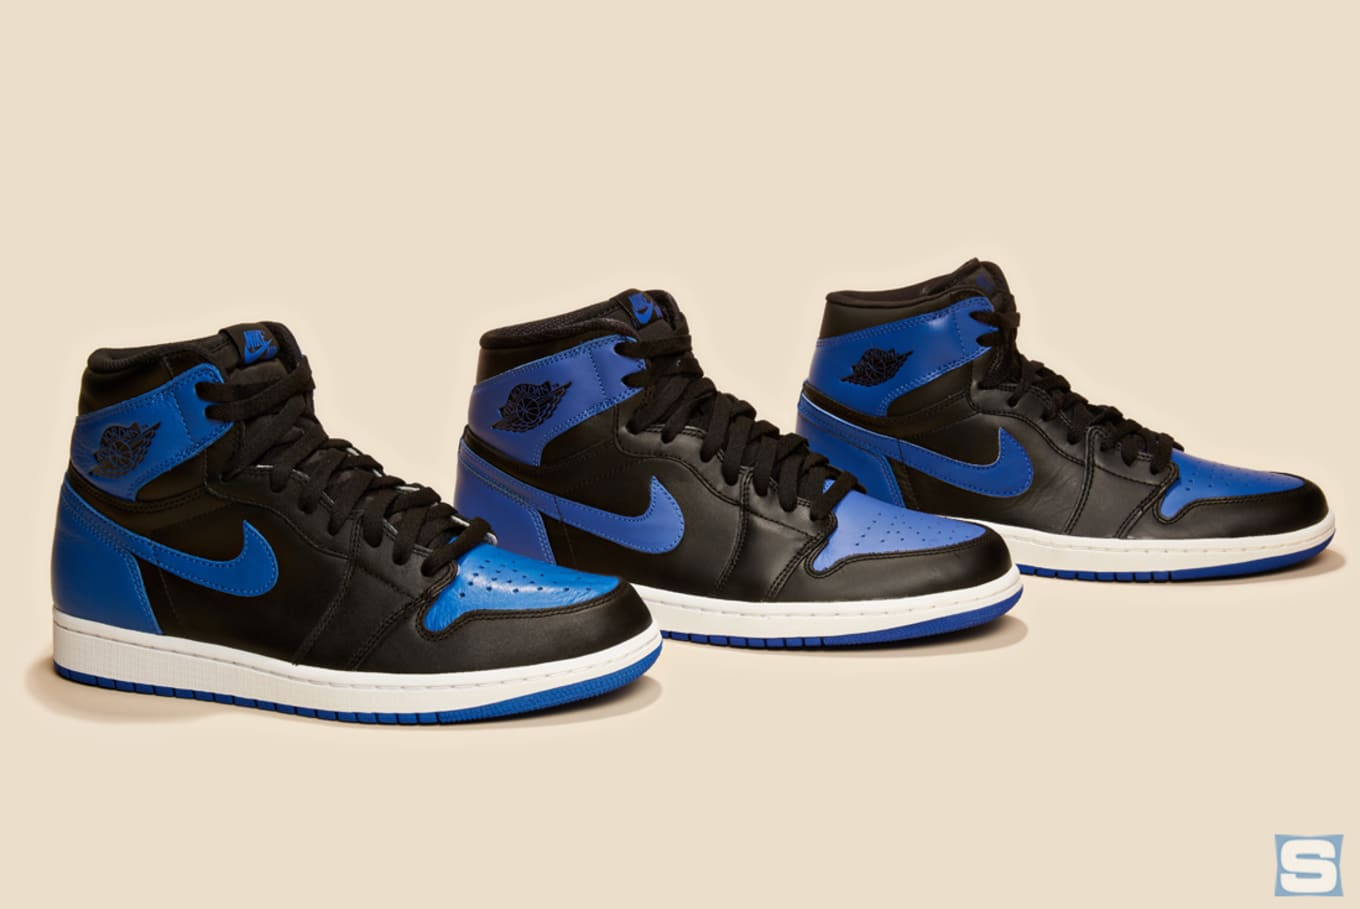 0cd7a3be2c53 A Comparison of Every  Royal  Air Jordan 1 Retro. 2001 vs. 2013 vs.